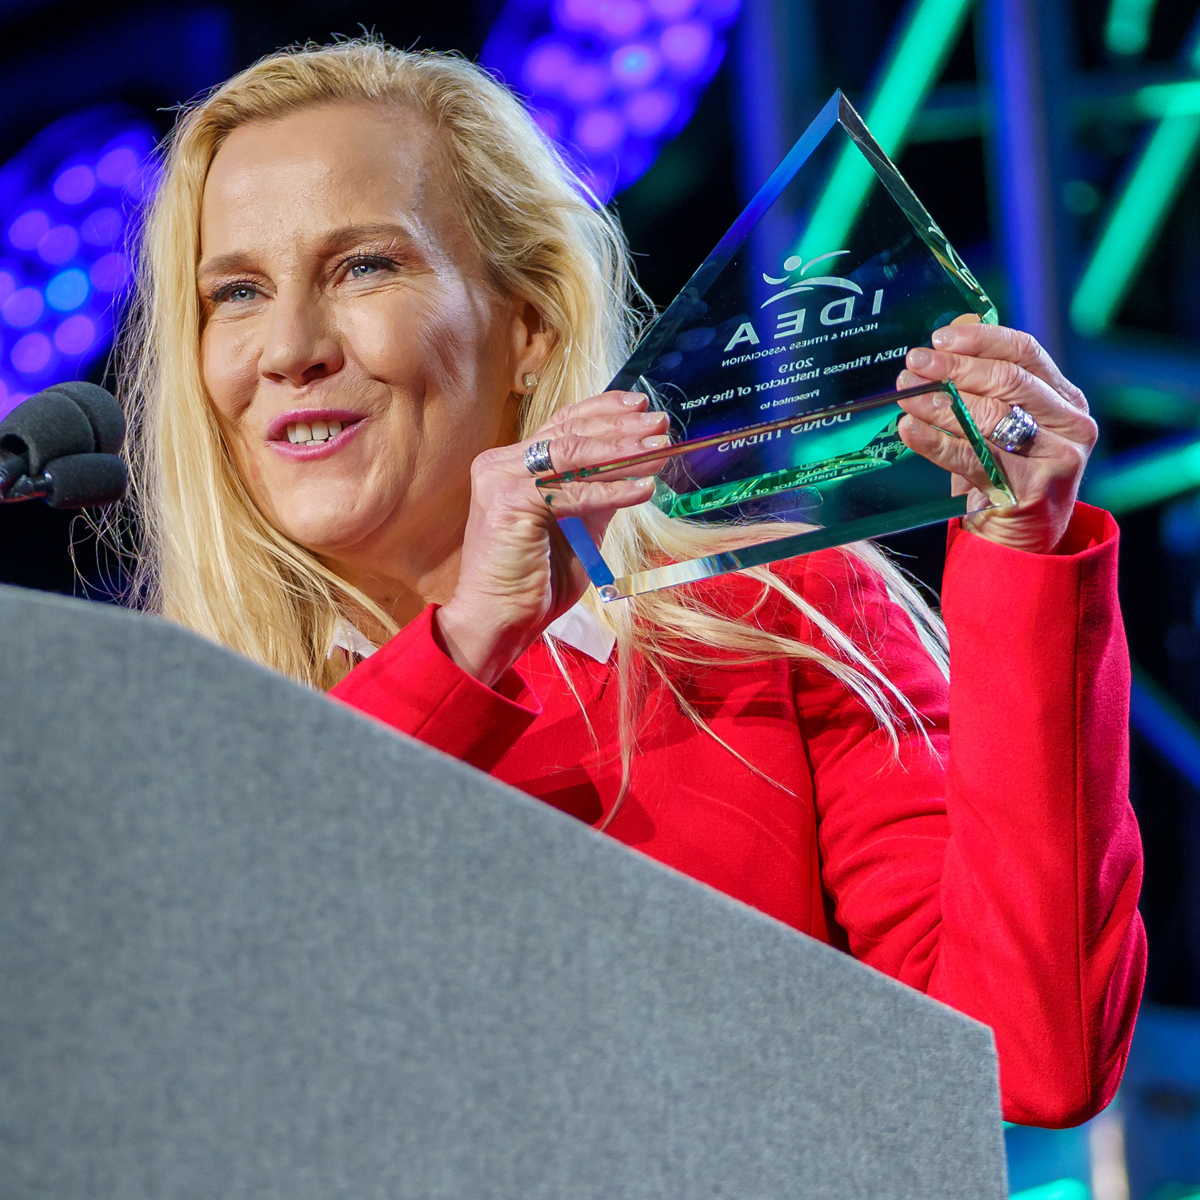 Doris Thews Award for IDEA Fitness Instructor of the Year at the 2019 IDEA World Convention